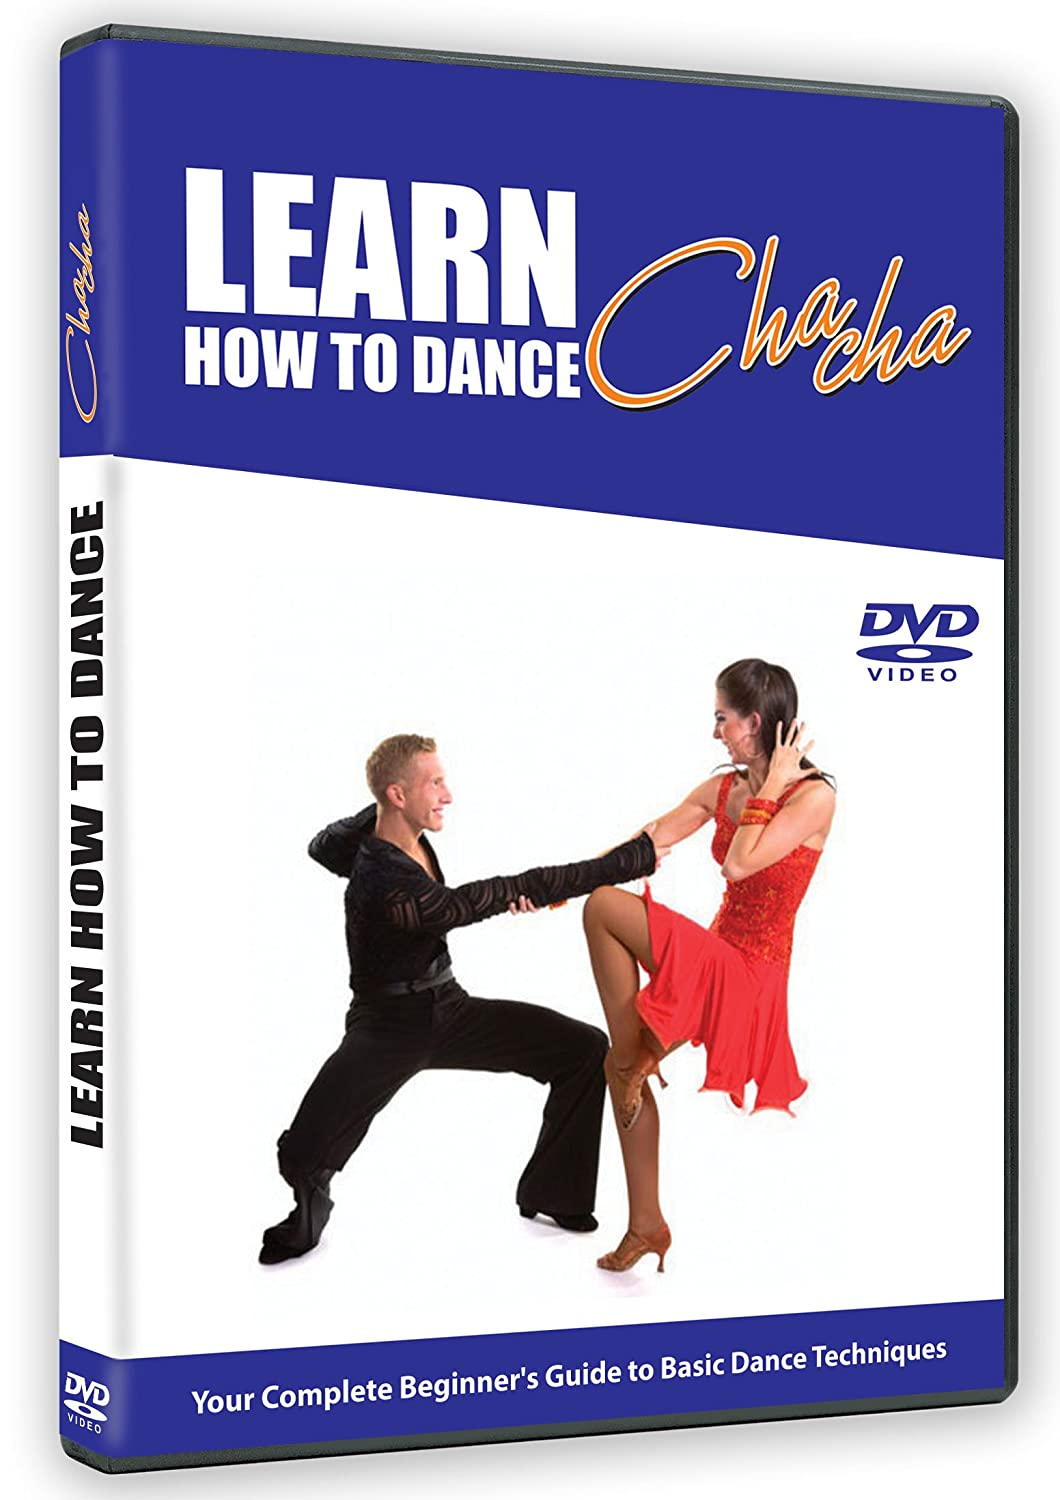 Let's Cha Cha! The Beginner's Guide to Ballroom Dancing